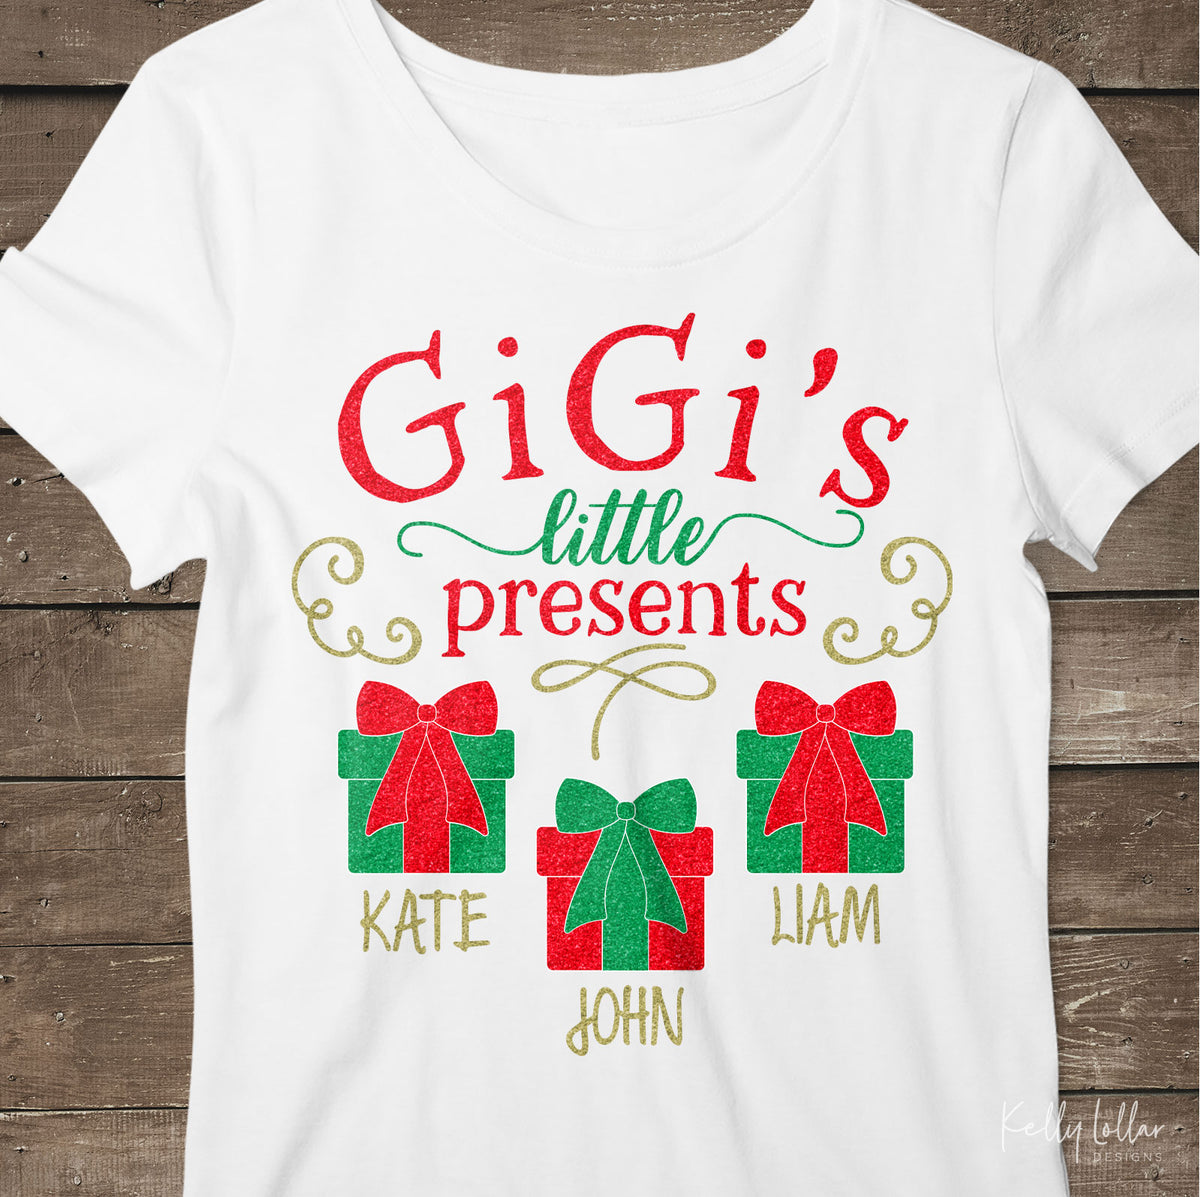 GiGi's Little Presents| Christmas Shirt Design for GiGi with Gift Boxes for Children's Names | SVG DXF PNG Cut Files